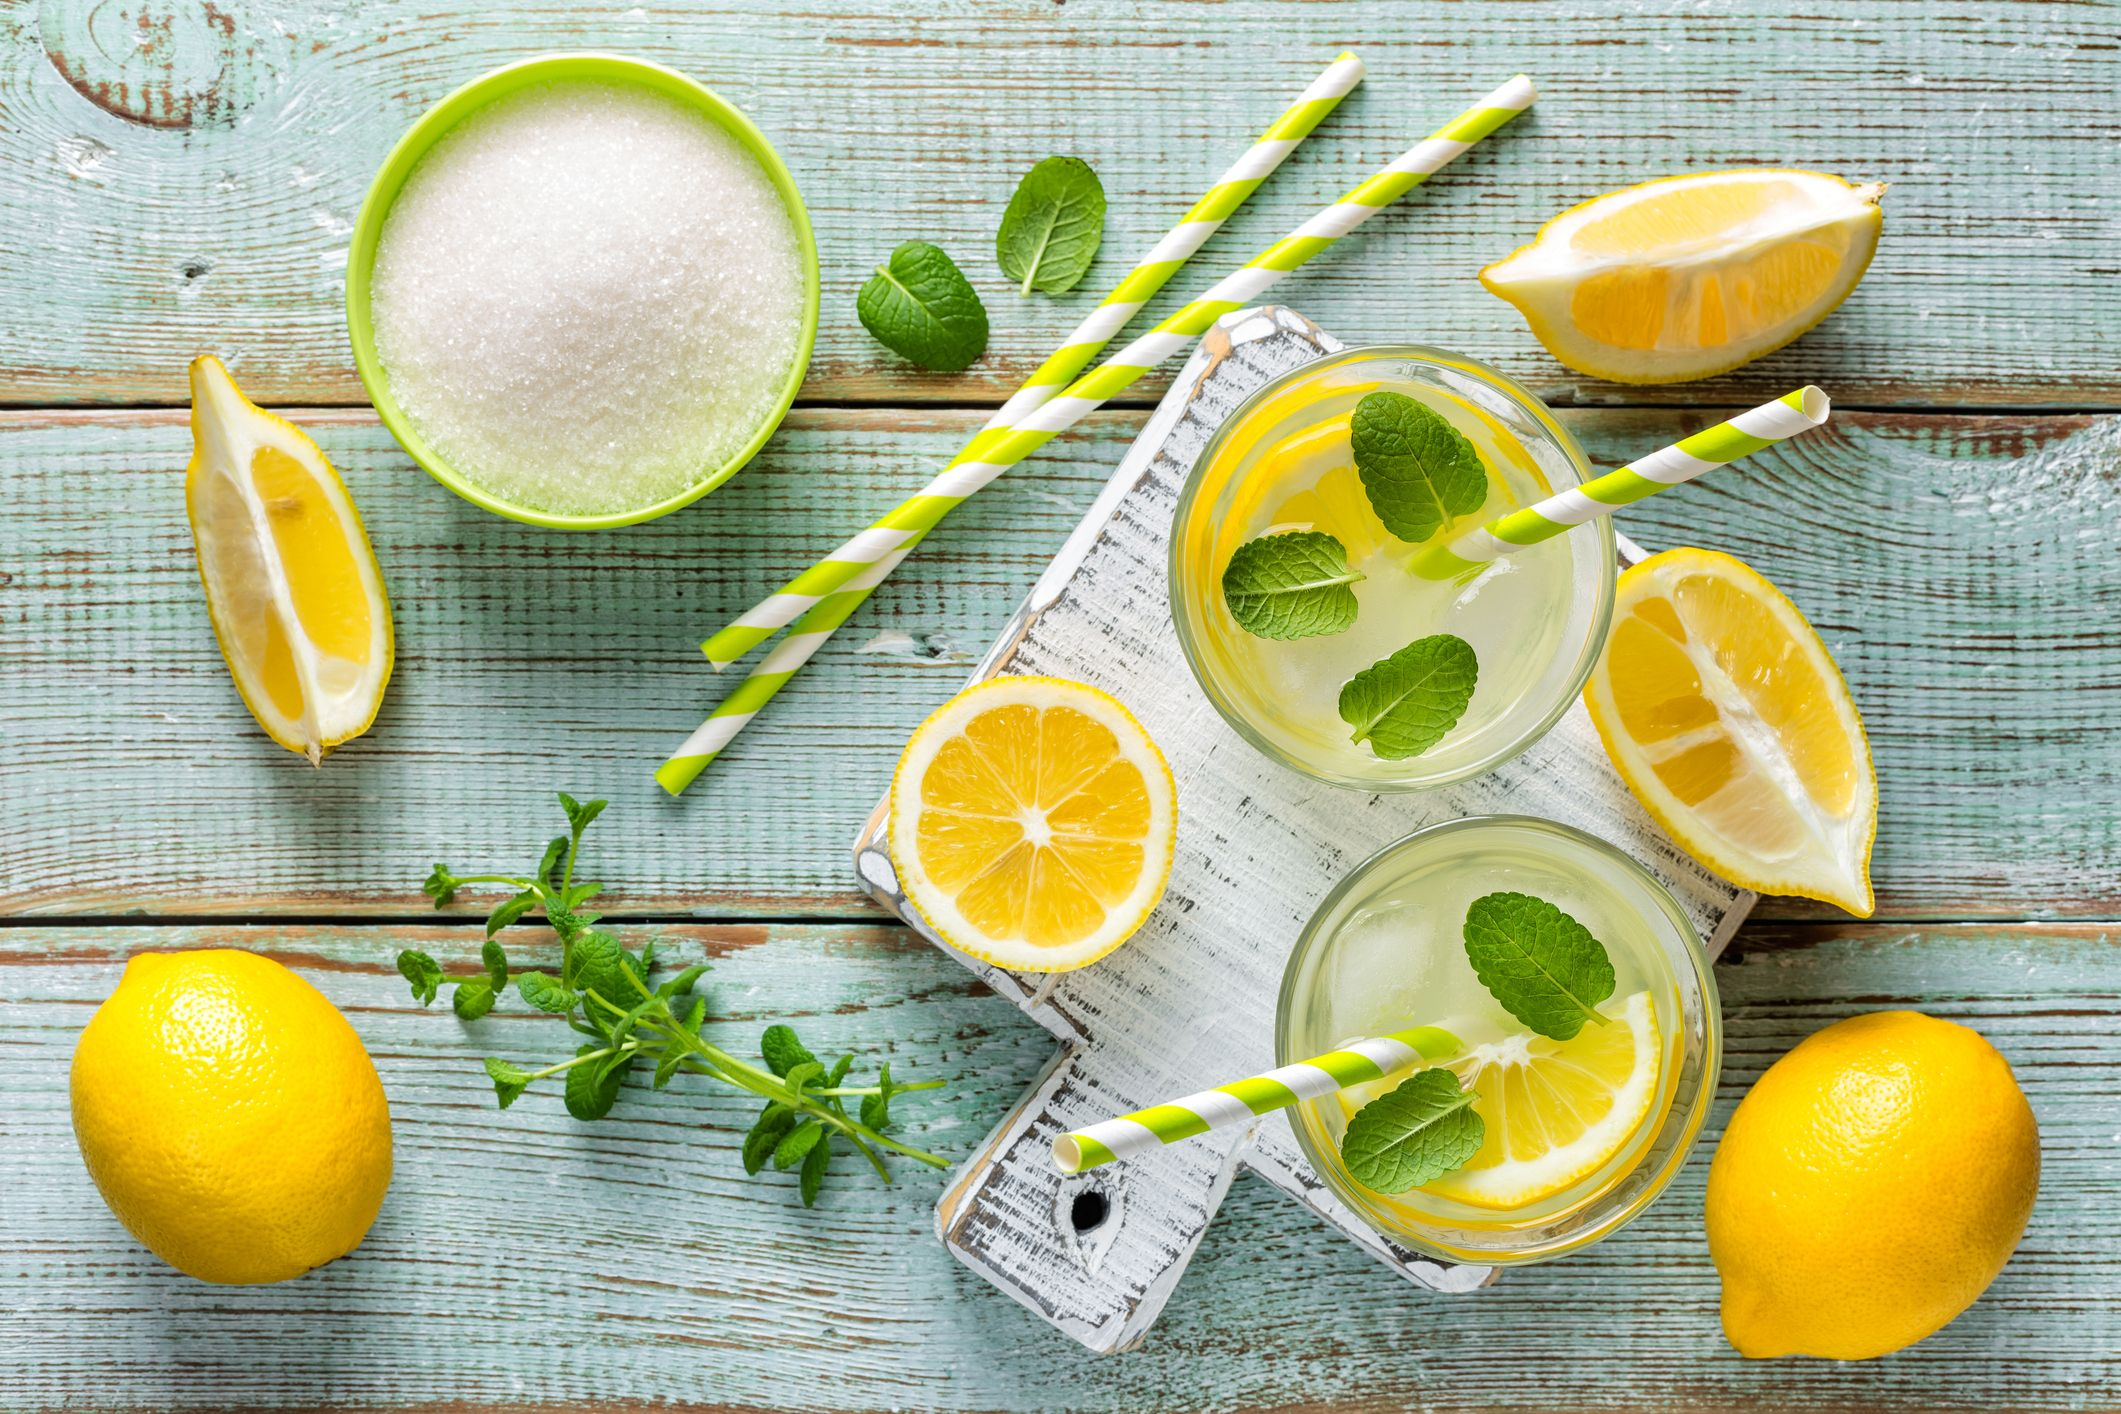 16 Homemade Lemonade Recipes How To Make Flavored Lemonade